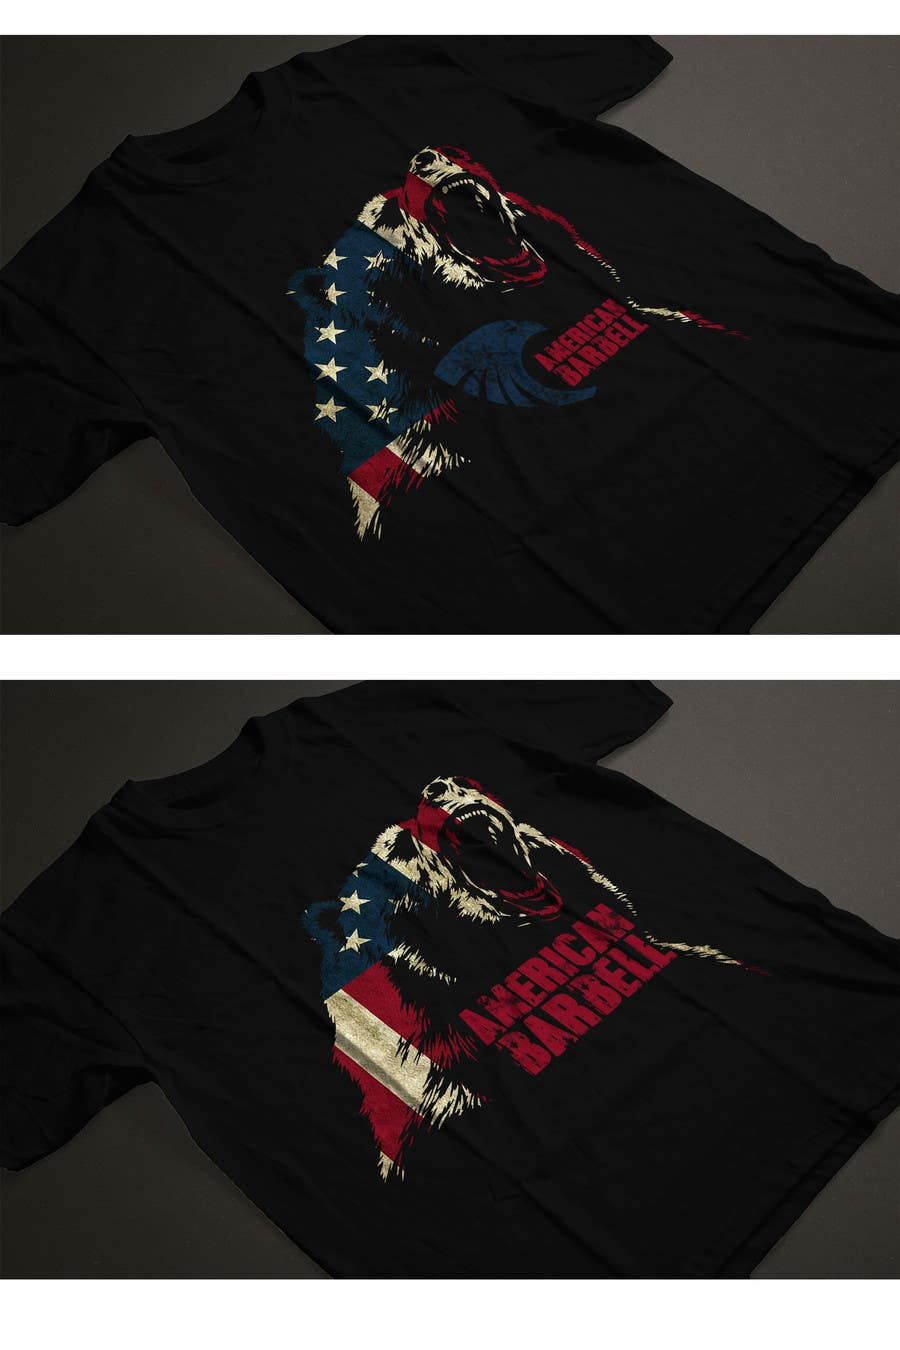 Shirt design needed -  146 For Design A T Shirts For American Barbell 10 Designs Needed By